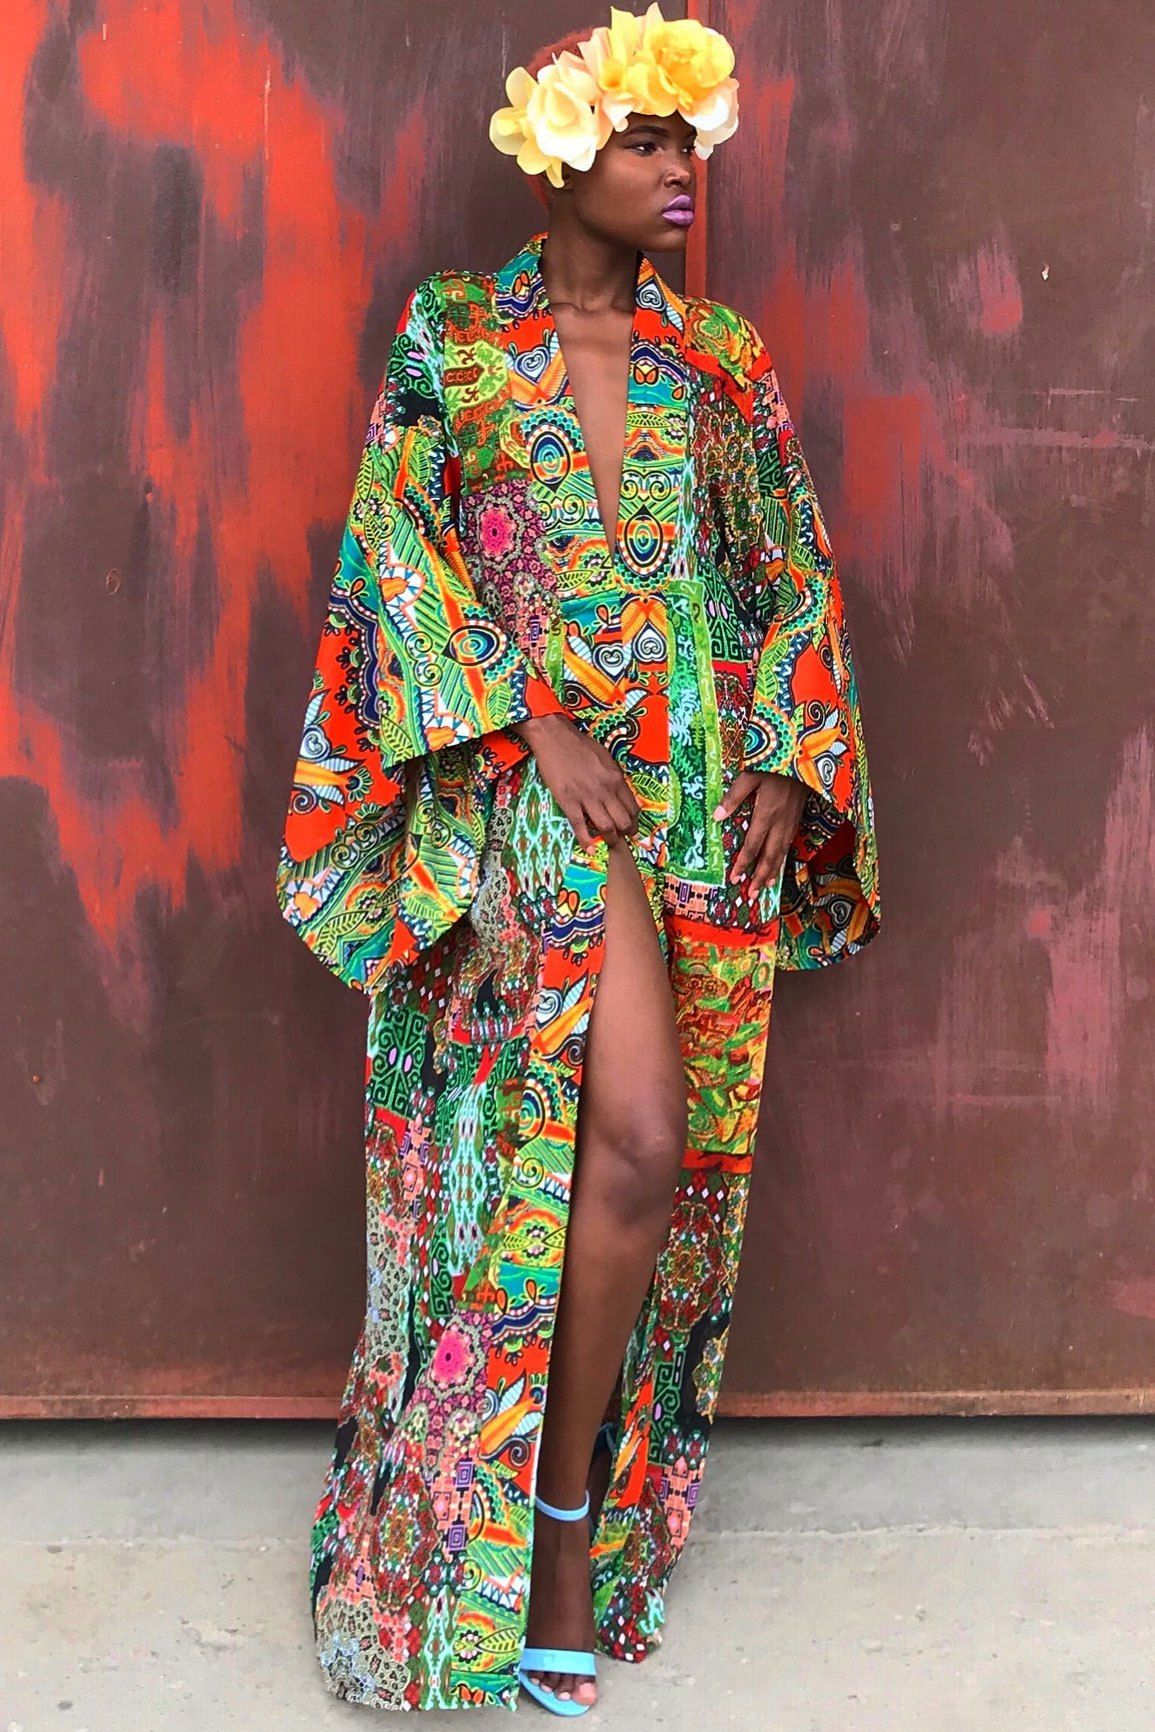 Mangishi Doll Md The Afro Eclectic Print Queen In 2020 African Print Fashion Dresses African Fashion Modern Colourful Outfits